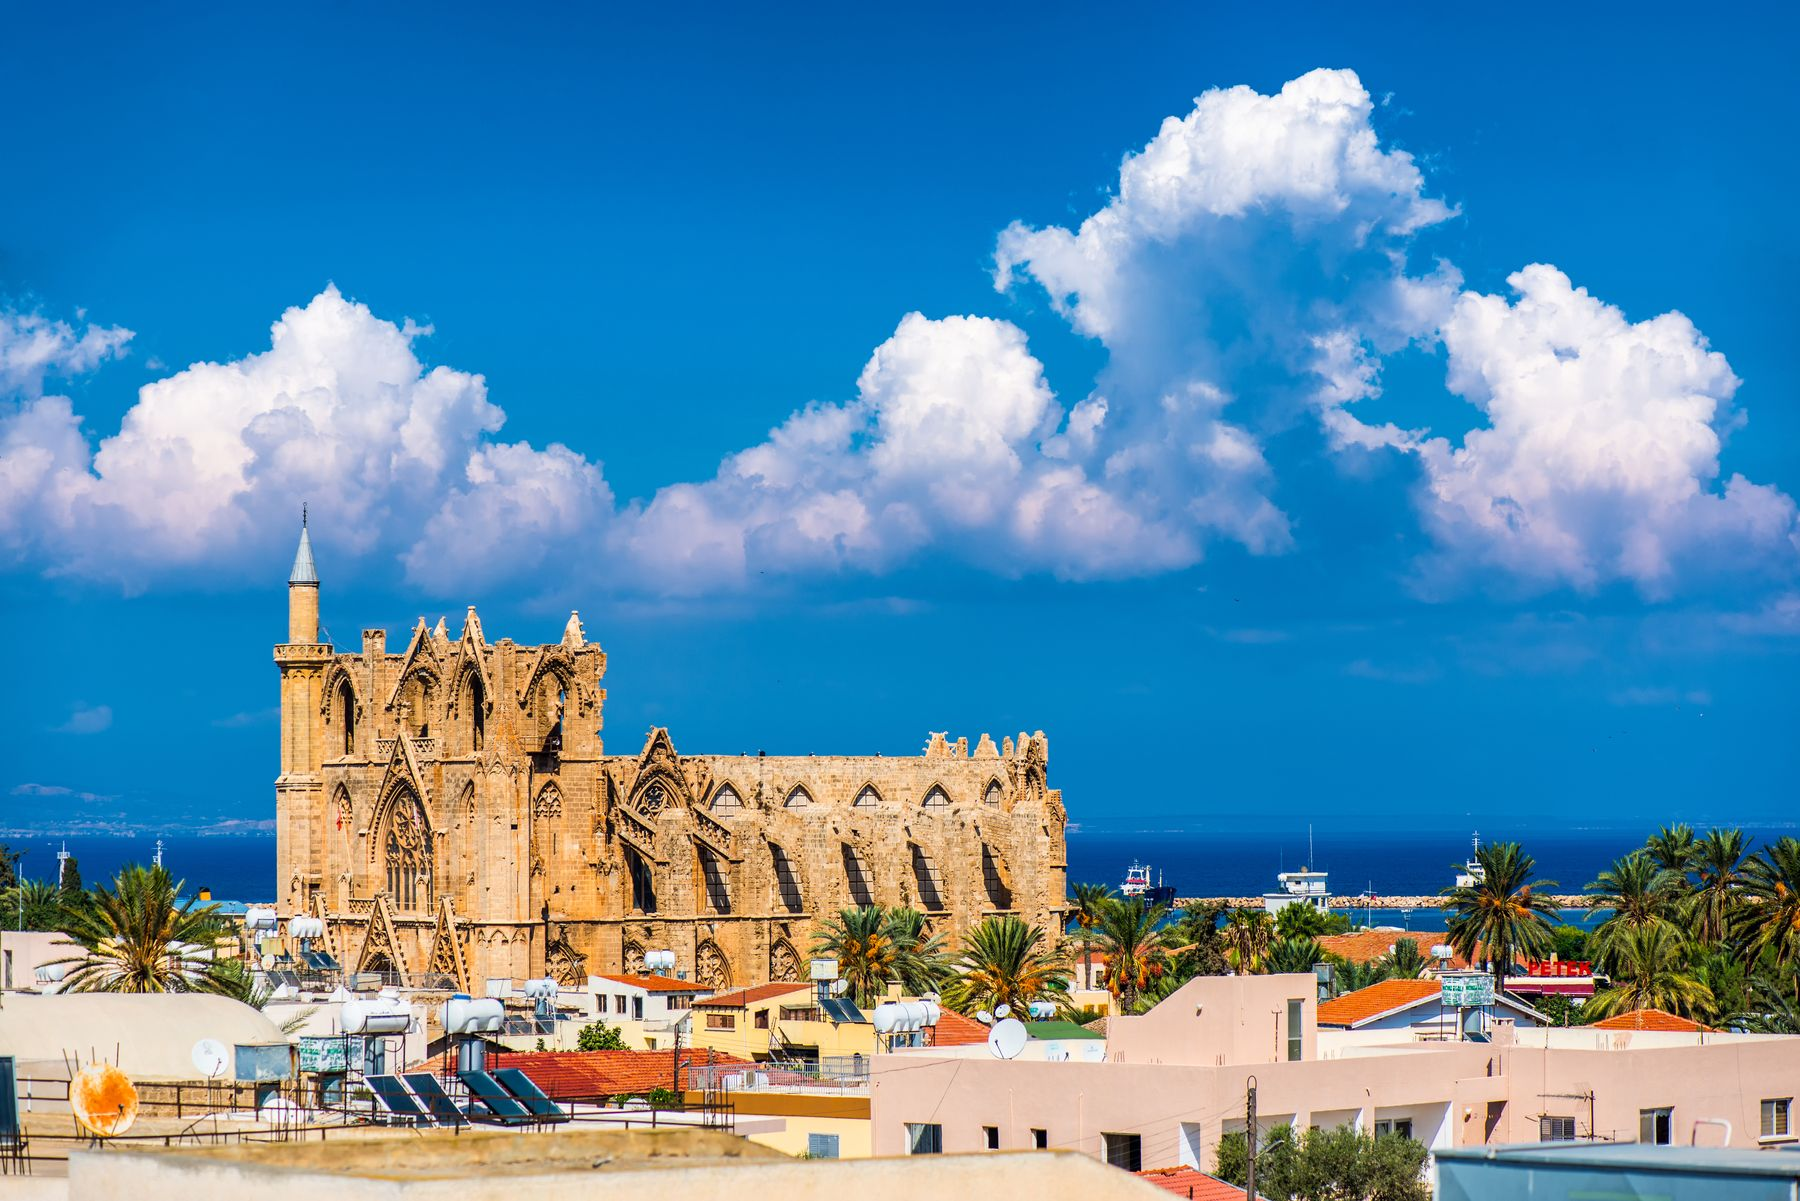 Town in Cyprus with a cathedral, palm trees, and beach in the background. Cyprus is consistently a popular and warm place for Canadians to travel to in December.